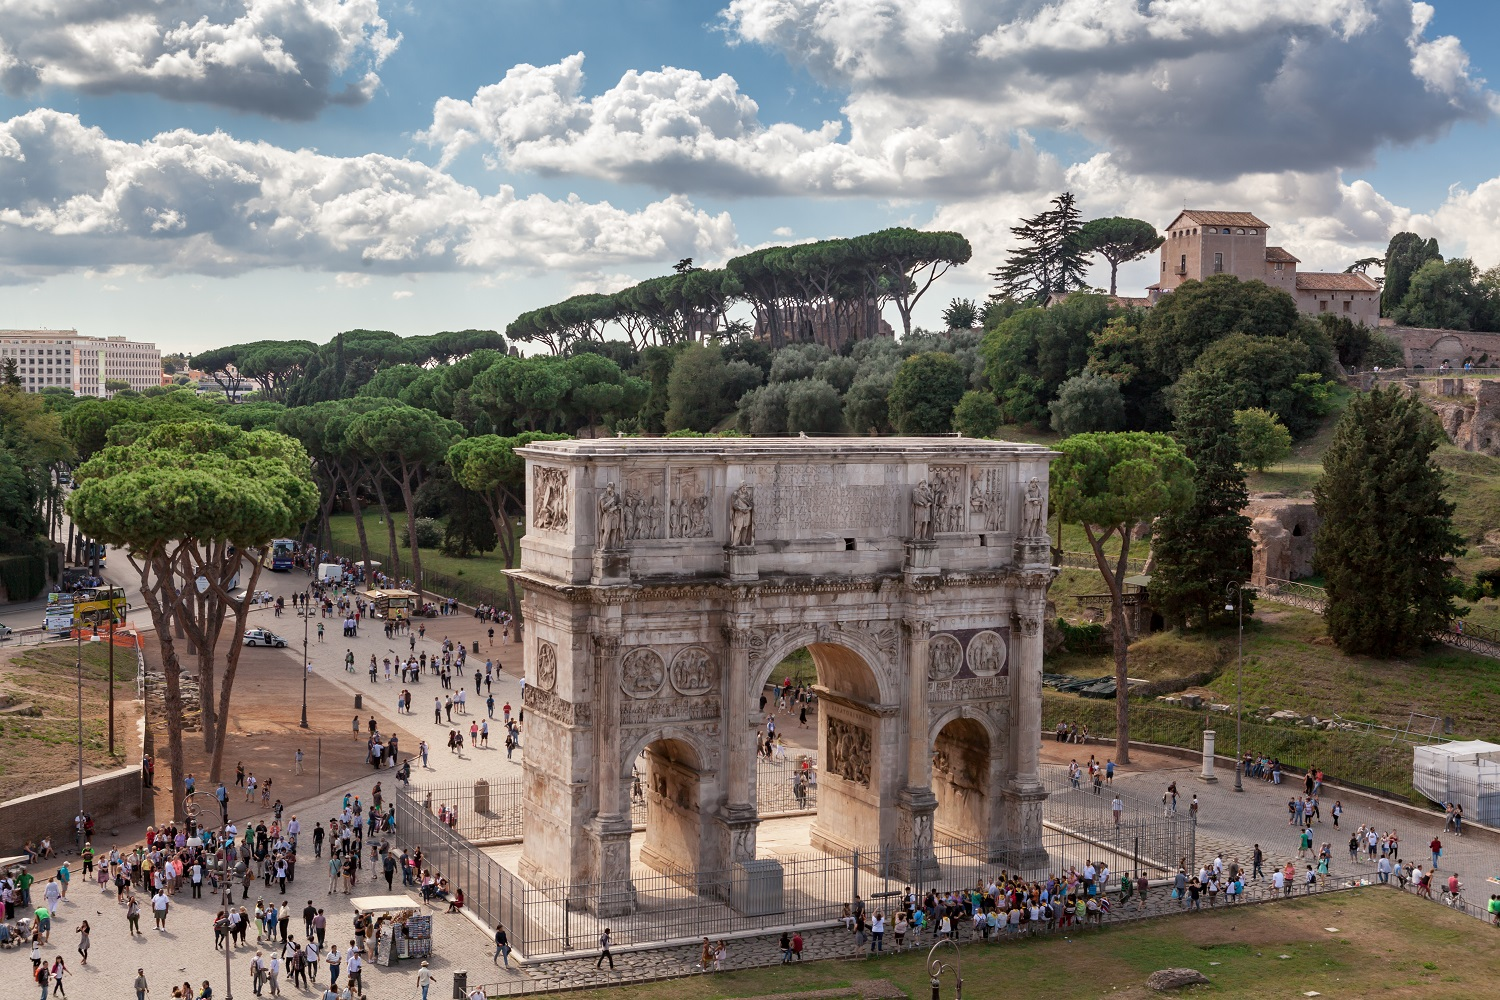 Arch of Constantine from the Colosseum in Rome